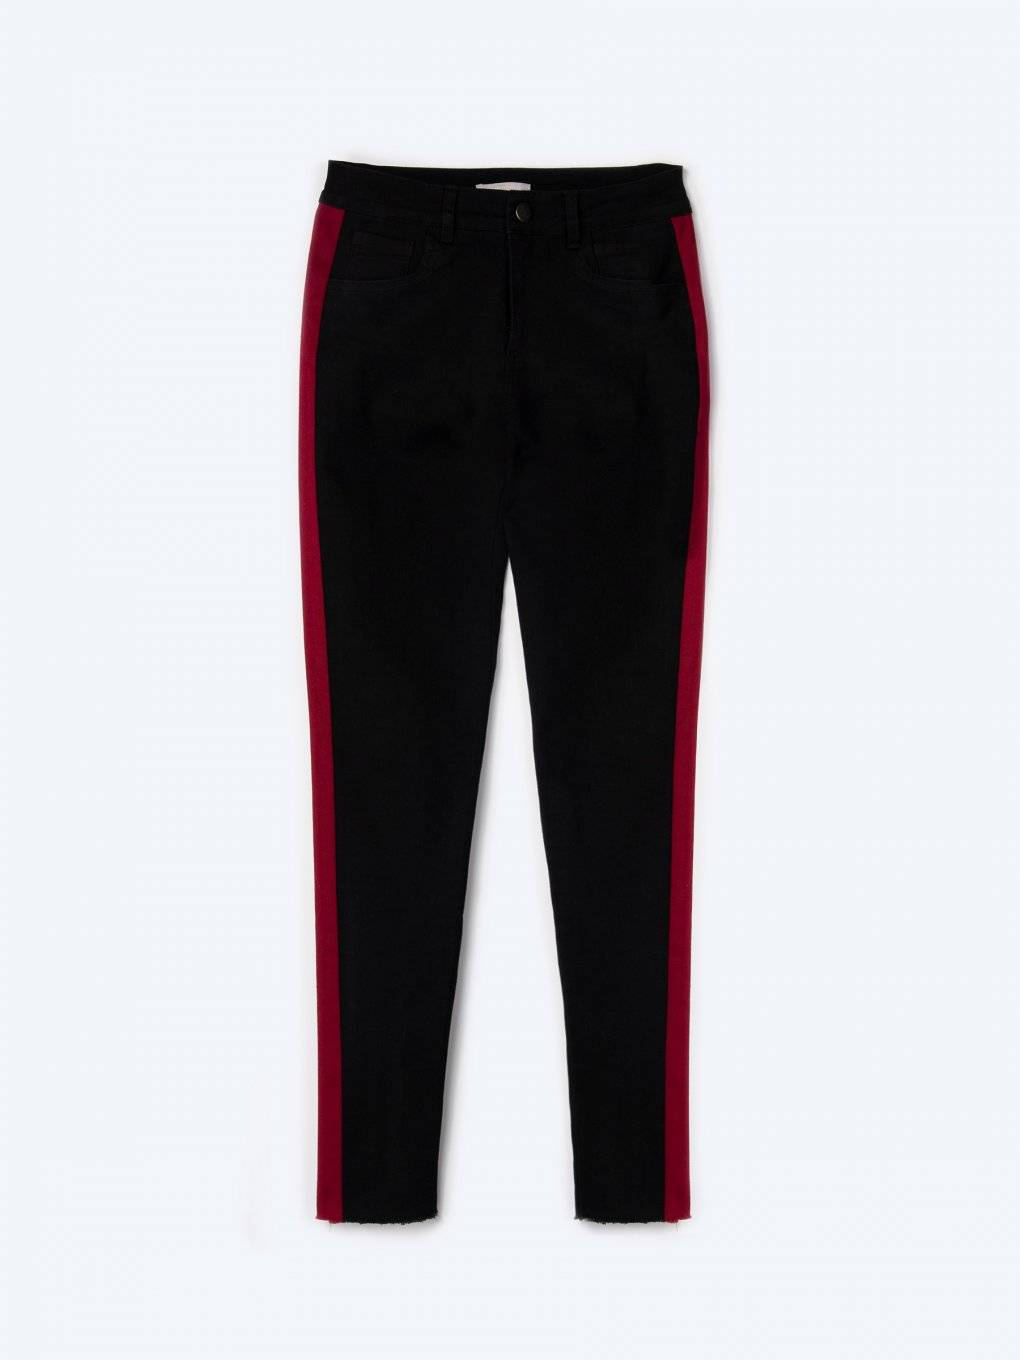 Elastic skinny trousers with contrasting side stripes